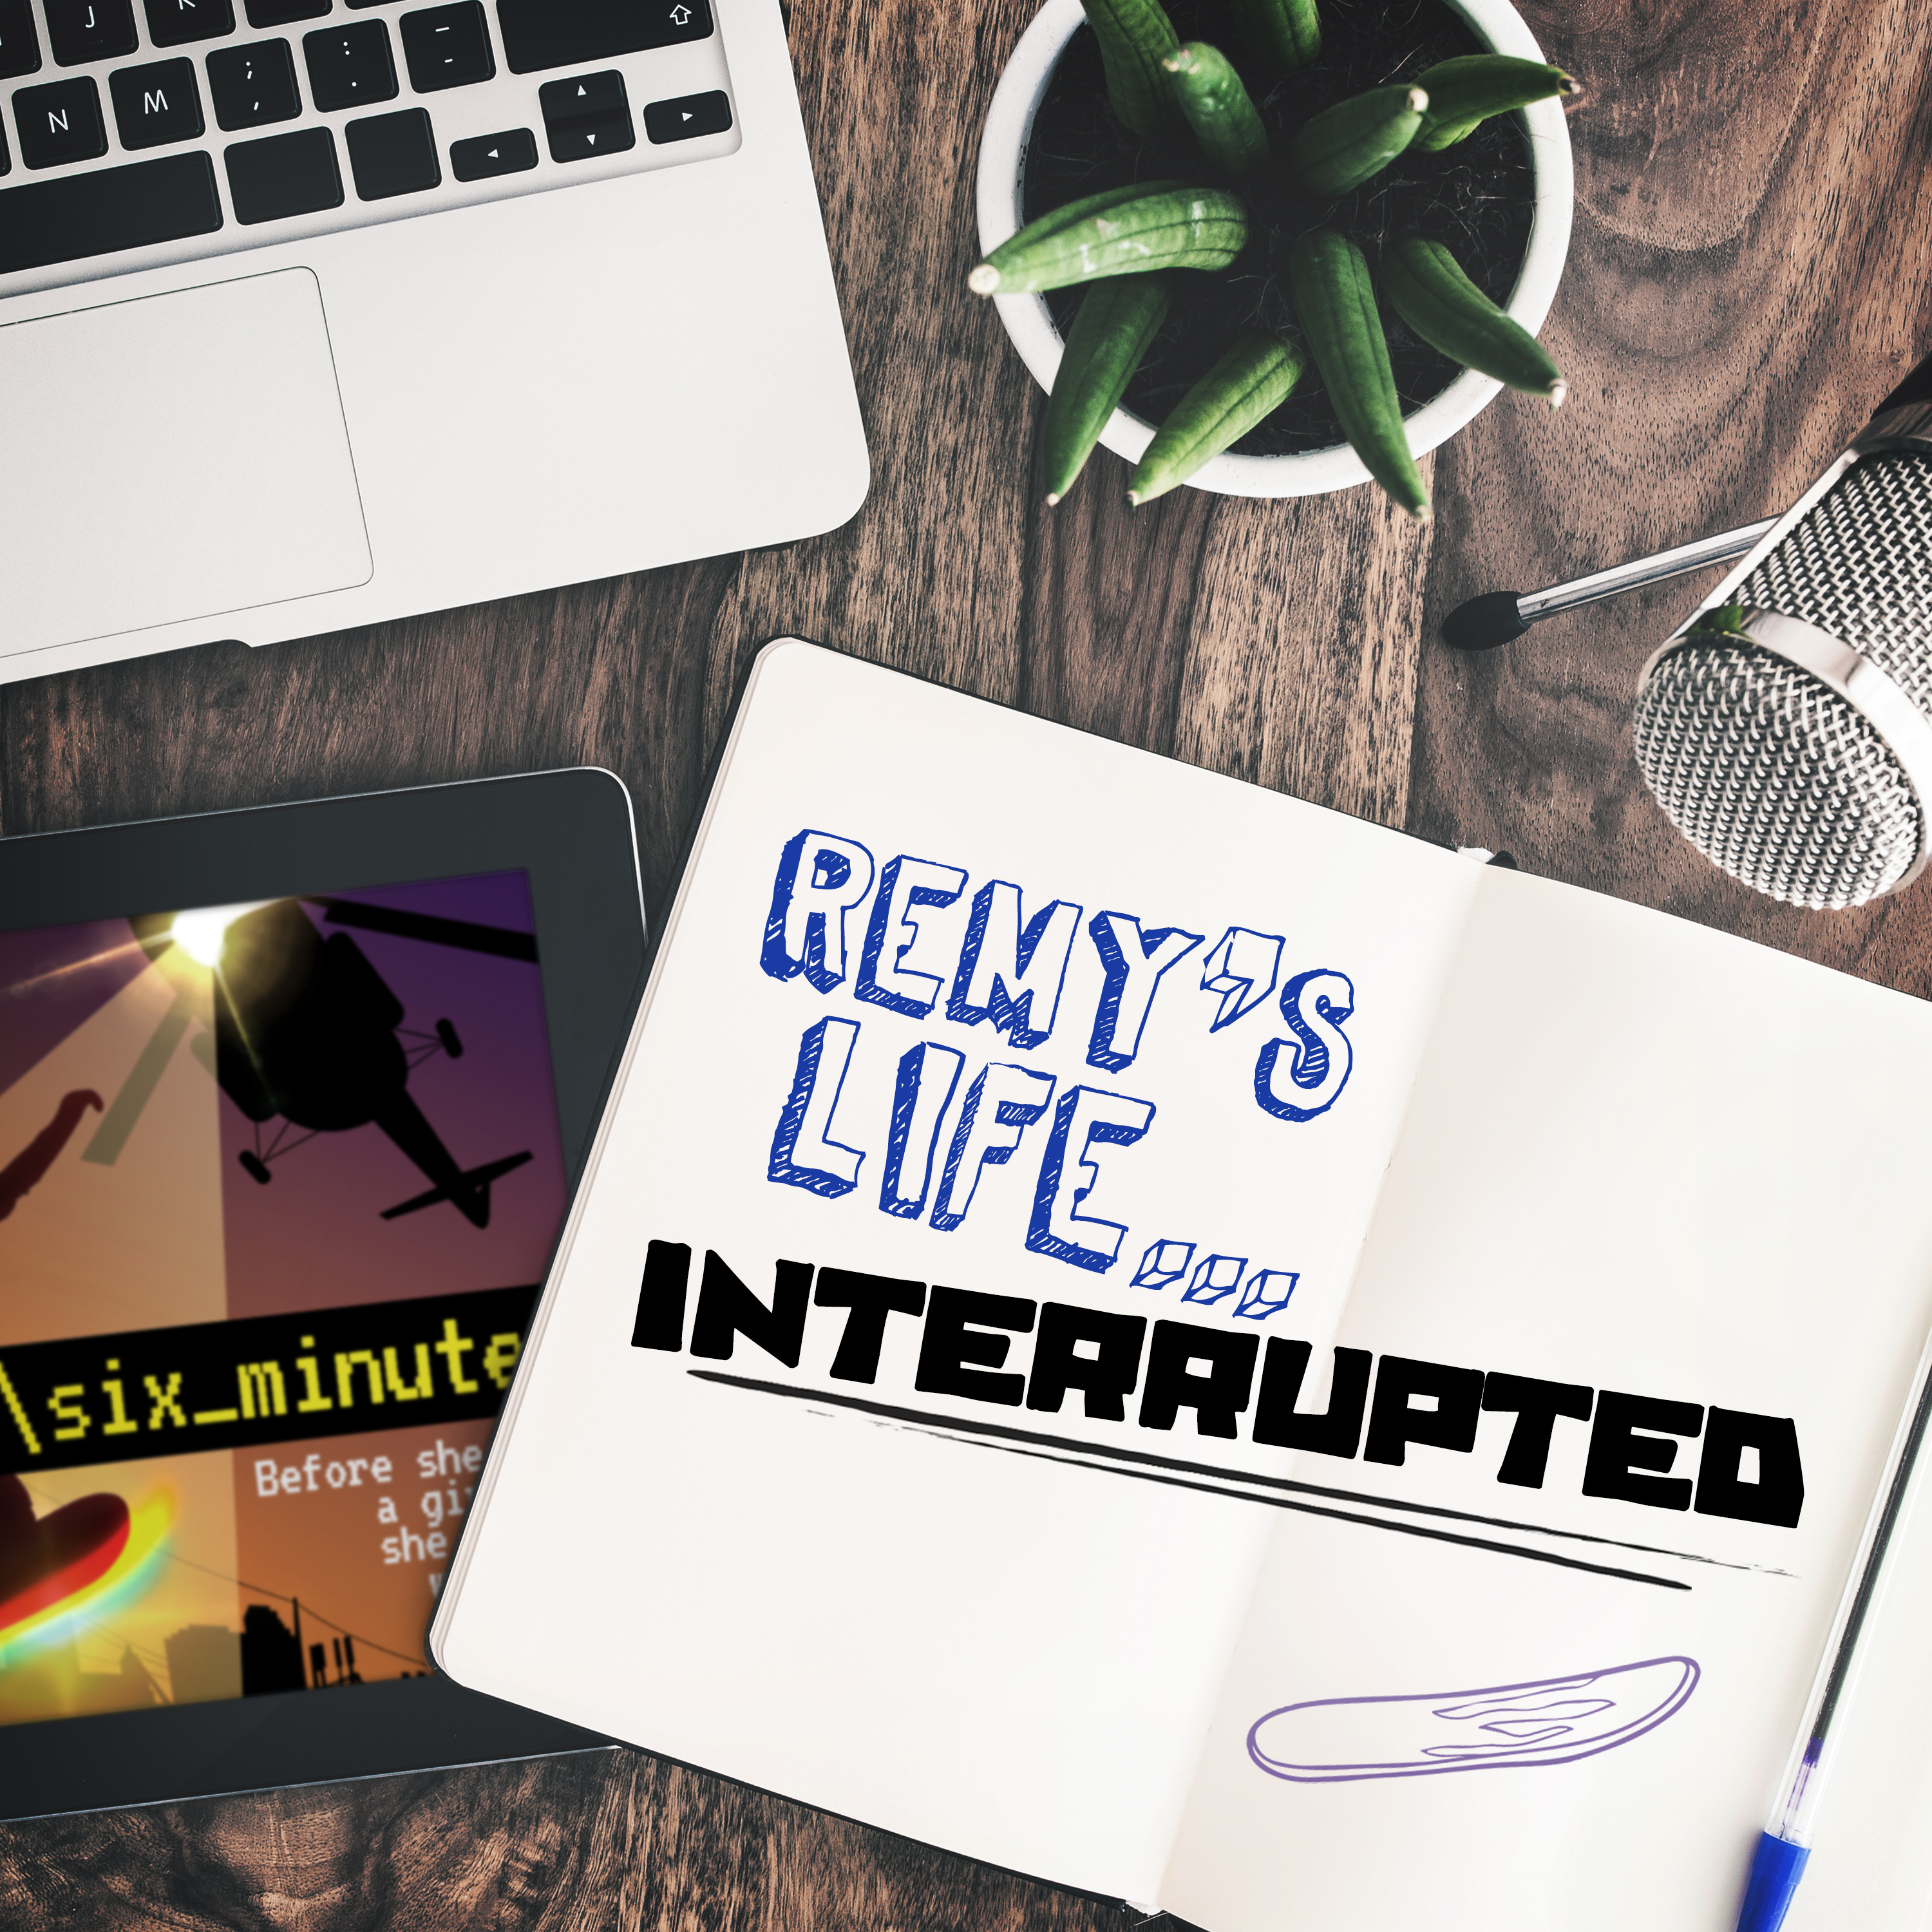 Remy's Life Interrupted: EP80